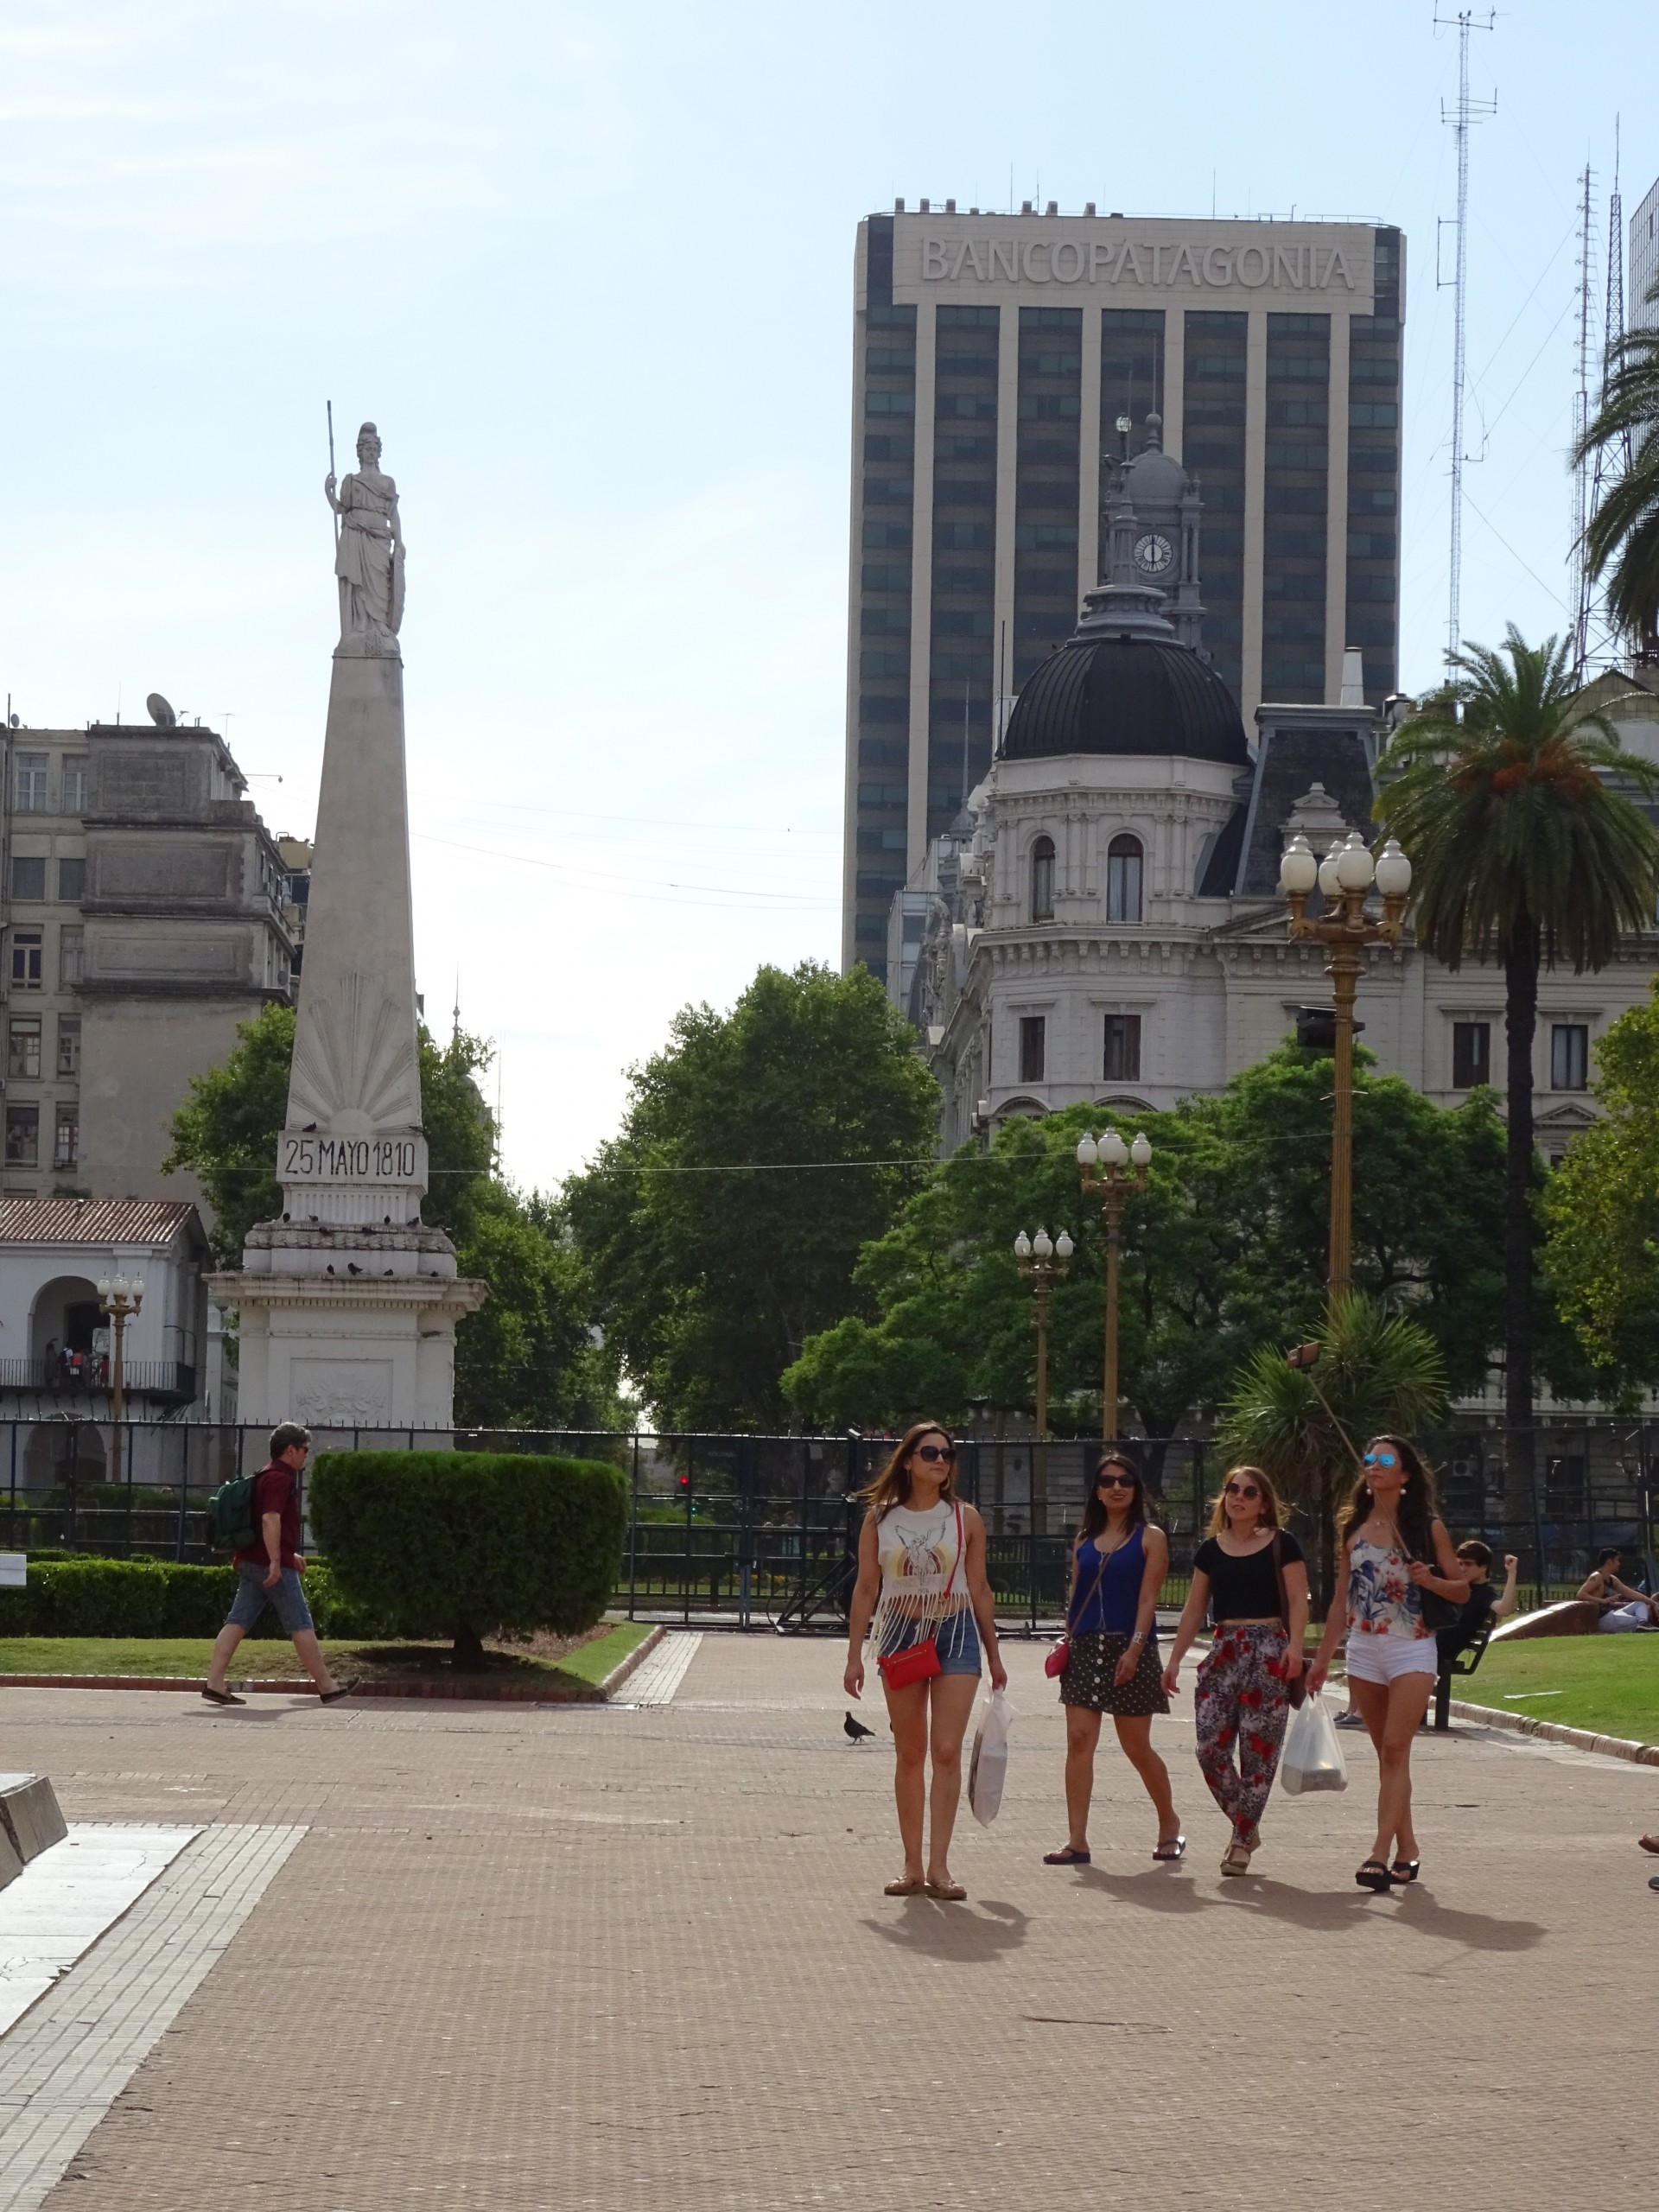 Plaza de Mayo, and the giant Banco Patagonia. It played an important role in my life!